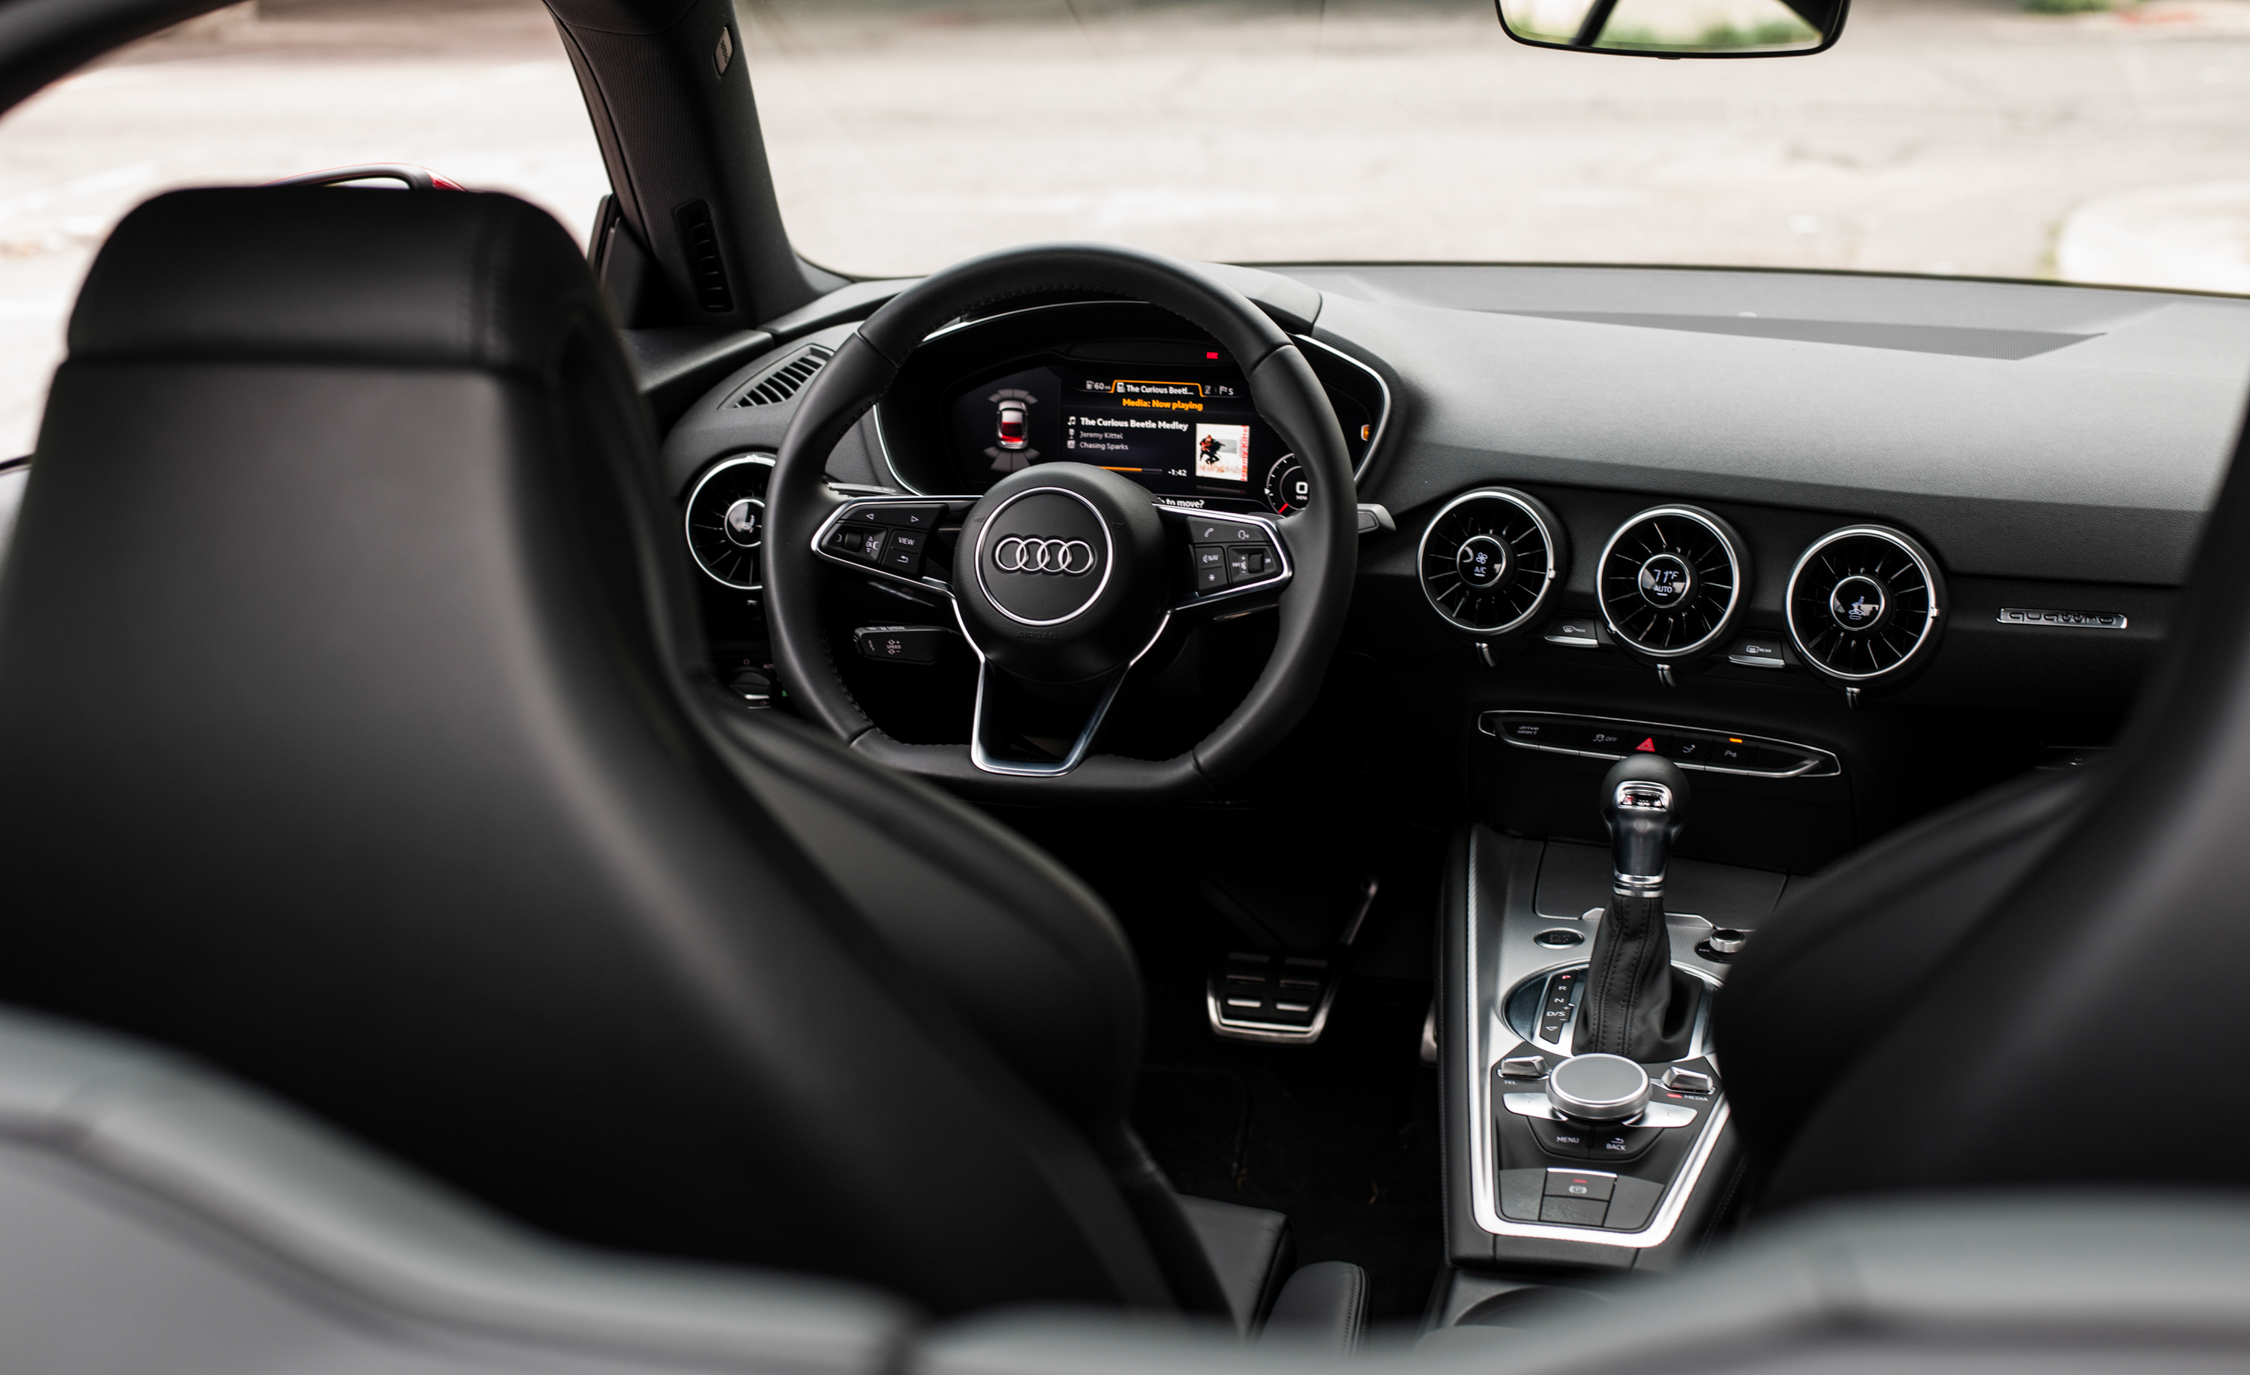 2016 Audi TT Coupe Interior Steering and Speedometer